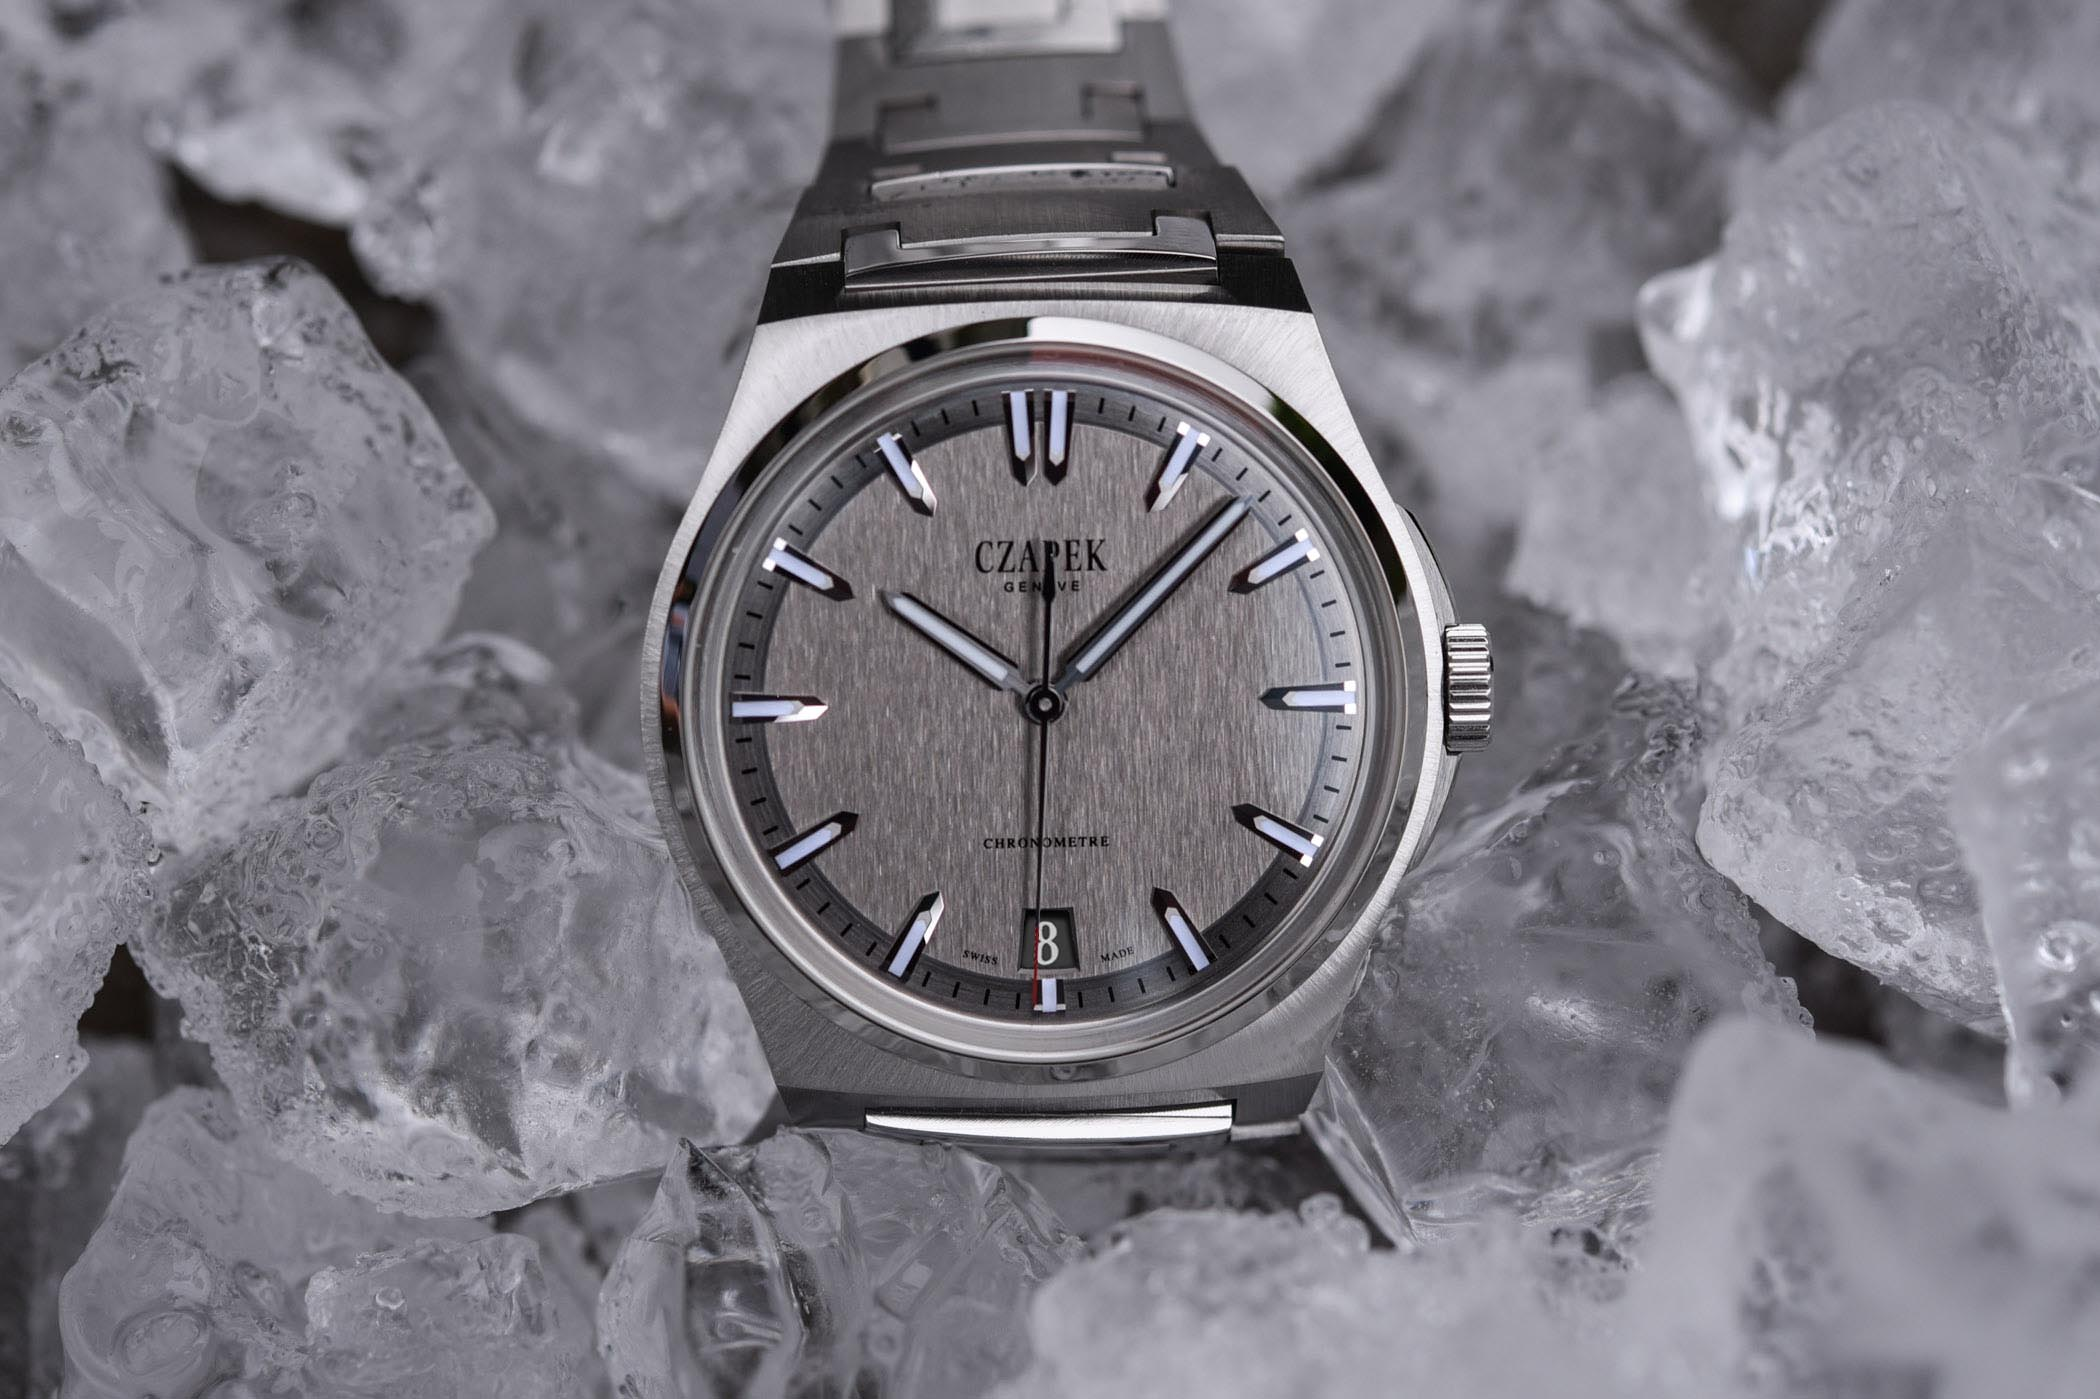 Czapek Antarctique Luxury Sports Watch